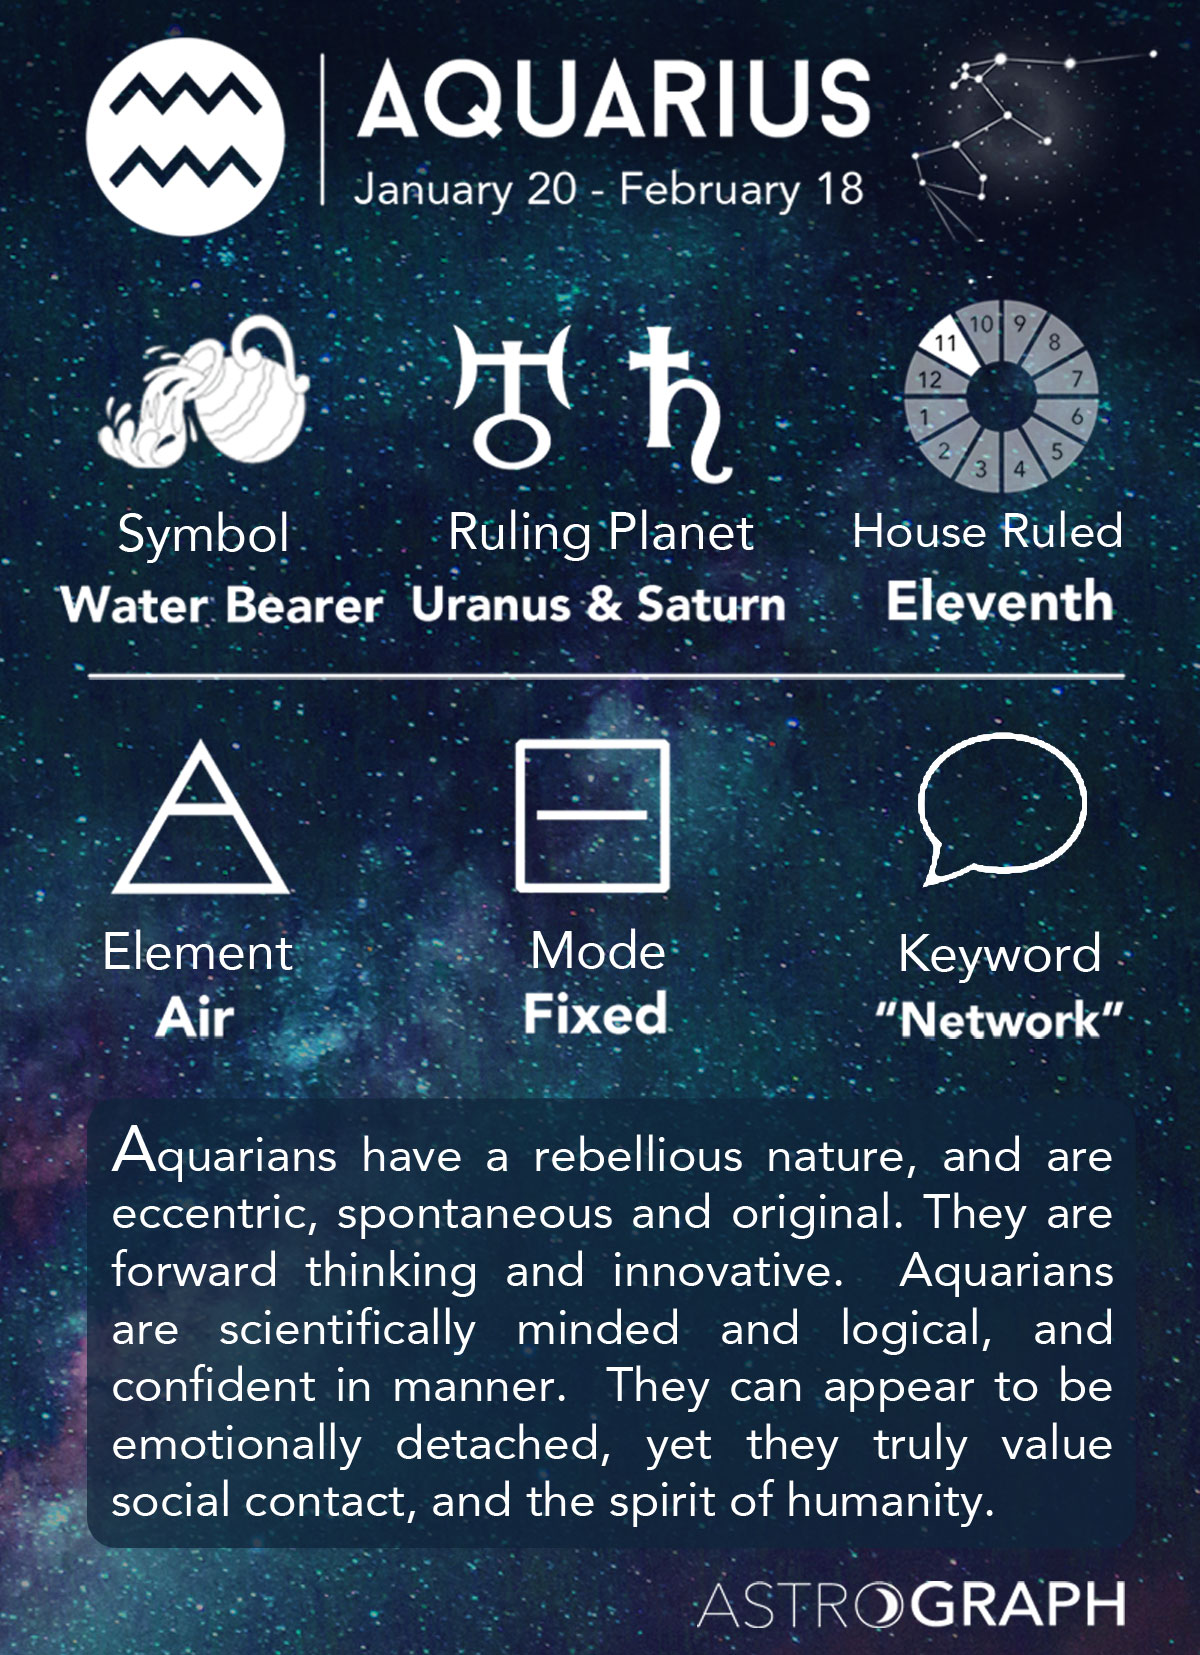 Aquarius Animal Spirit ASTROGRAPH - Aq...